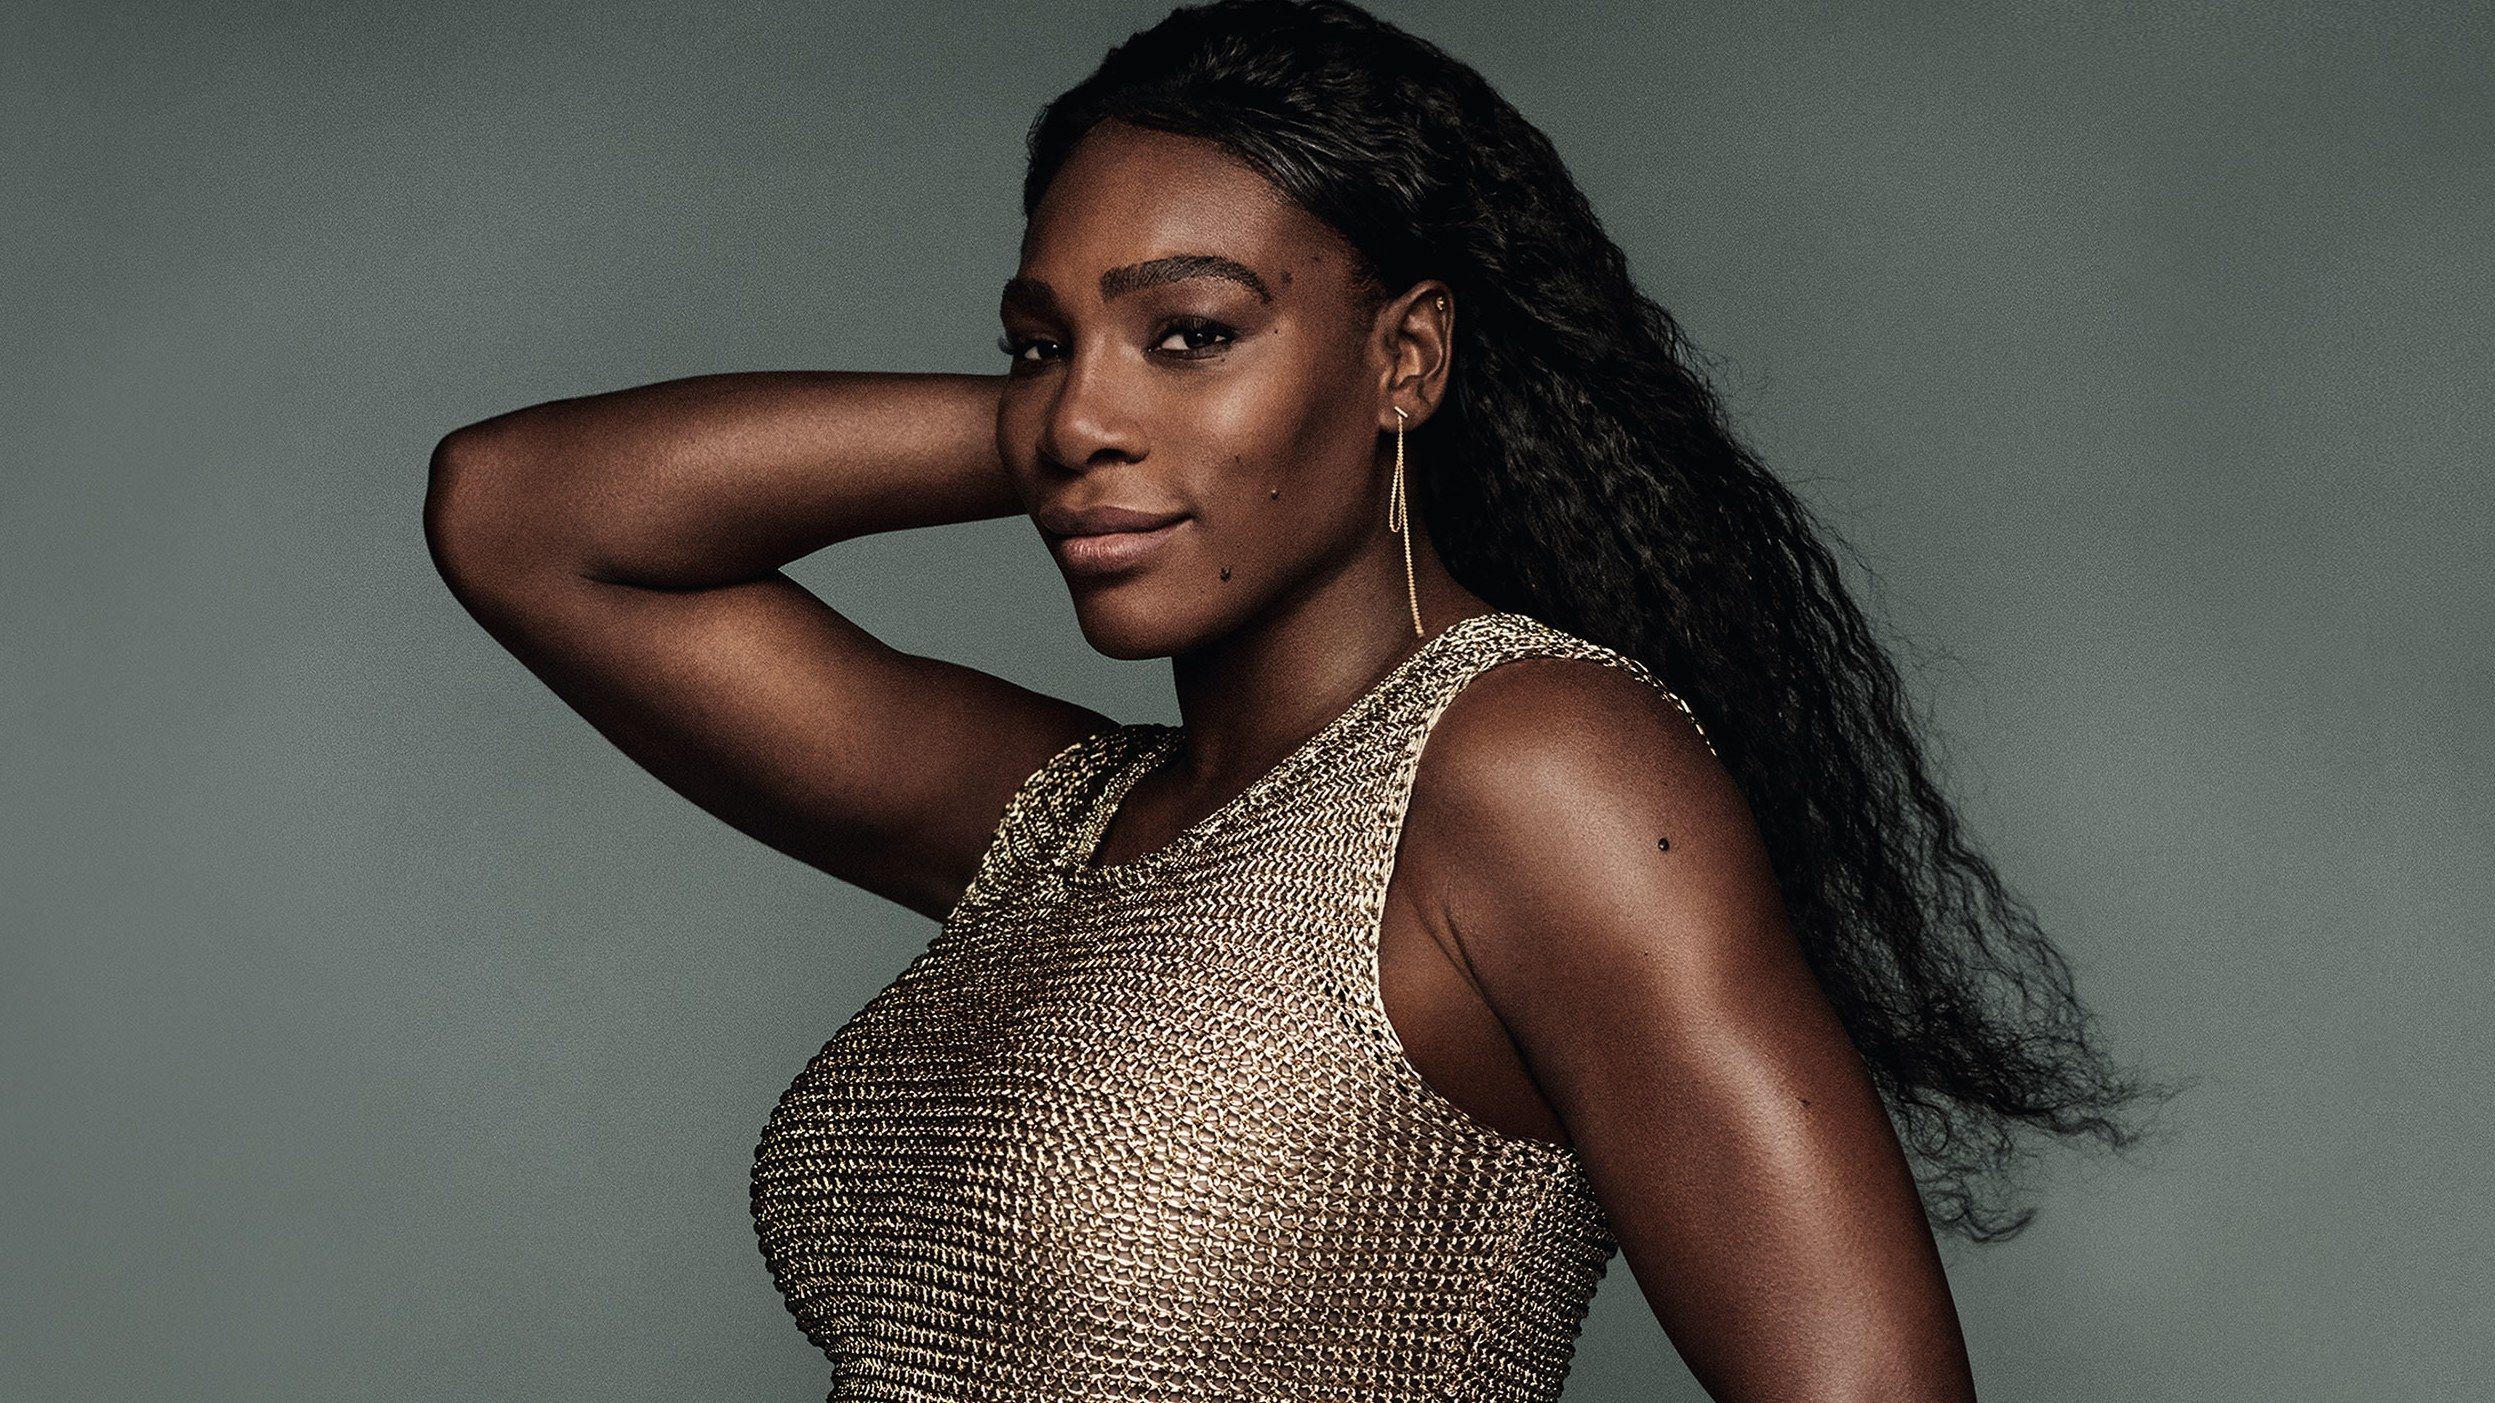 Cleavage Serena Williams nudes (69 foto and video), Tits, Is a cute, Instagram, butt 2020